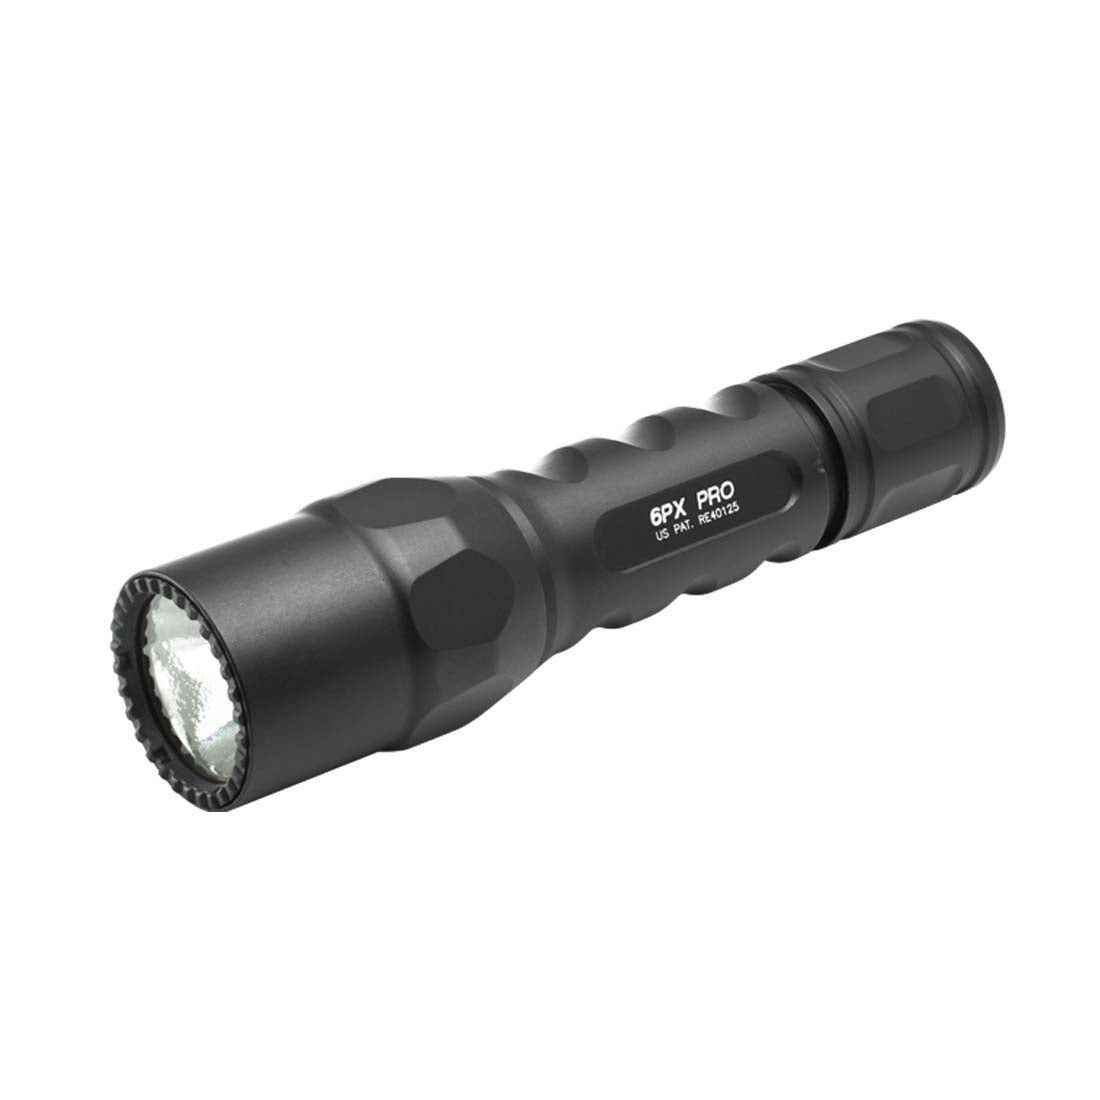 Surefire 6PX Pro Dual Output Led Flashlights